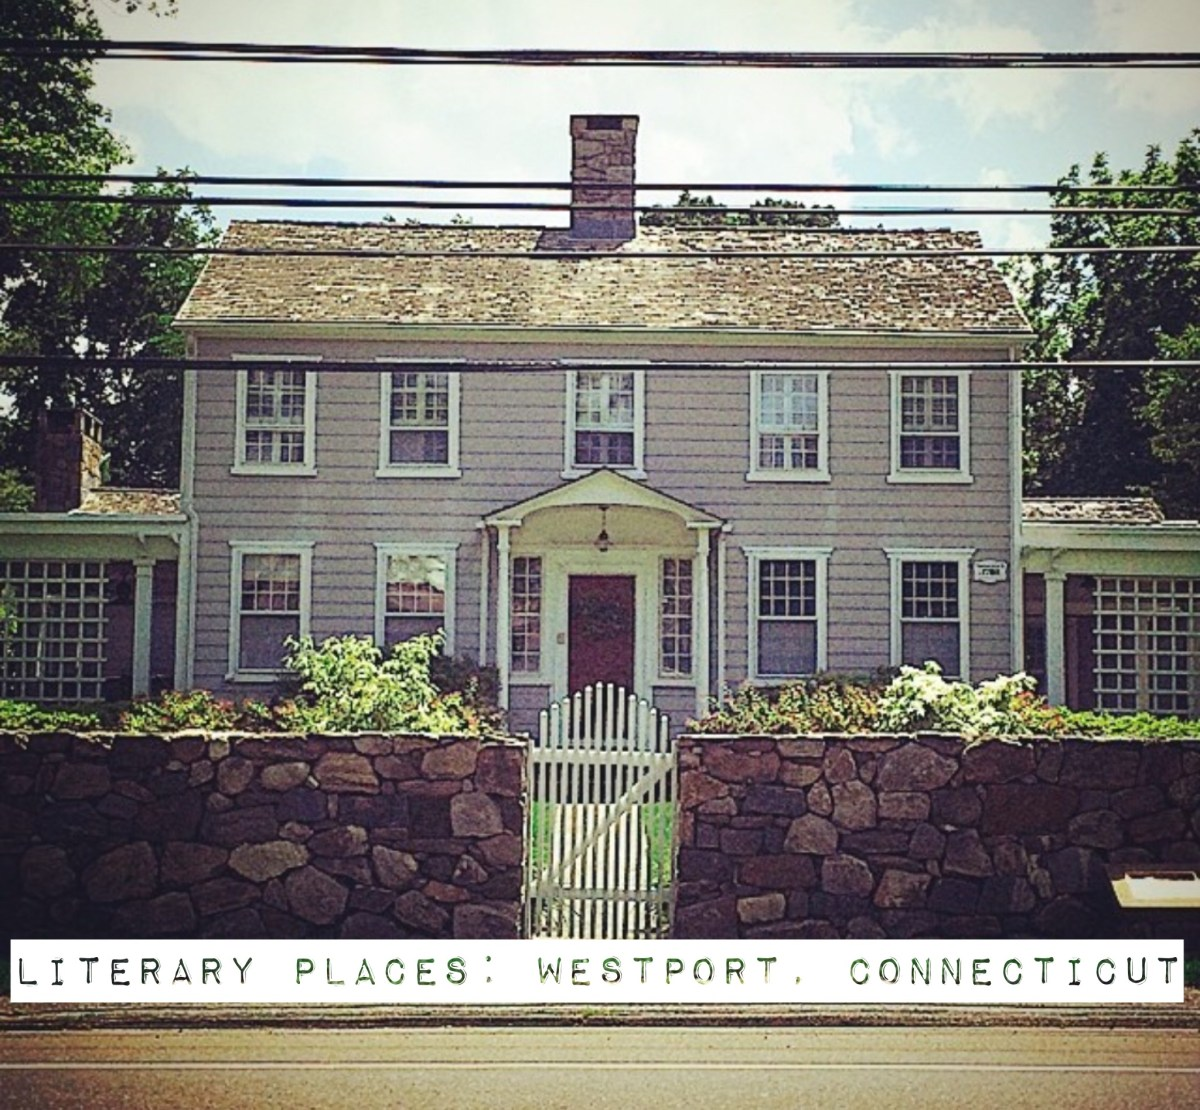 Literary Places: Westport, Connecticut